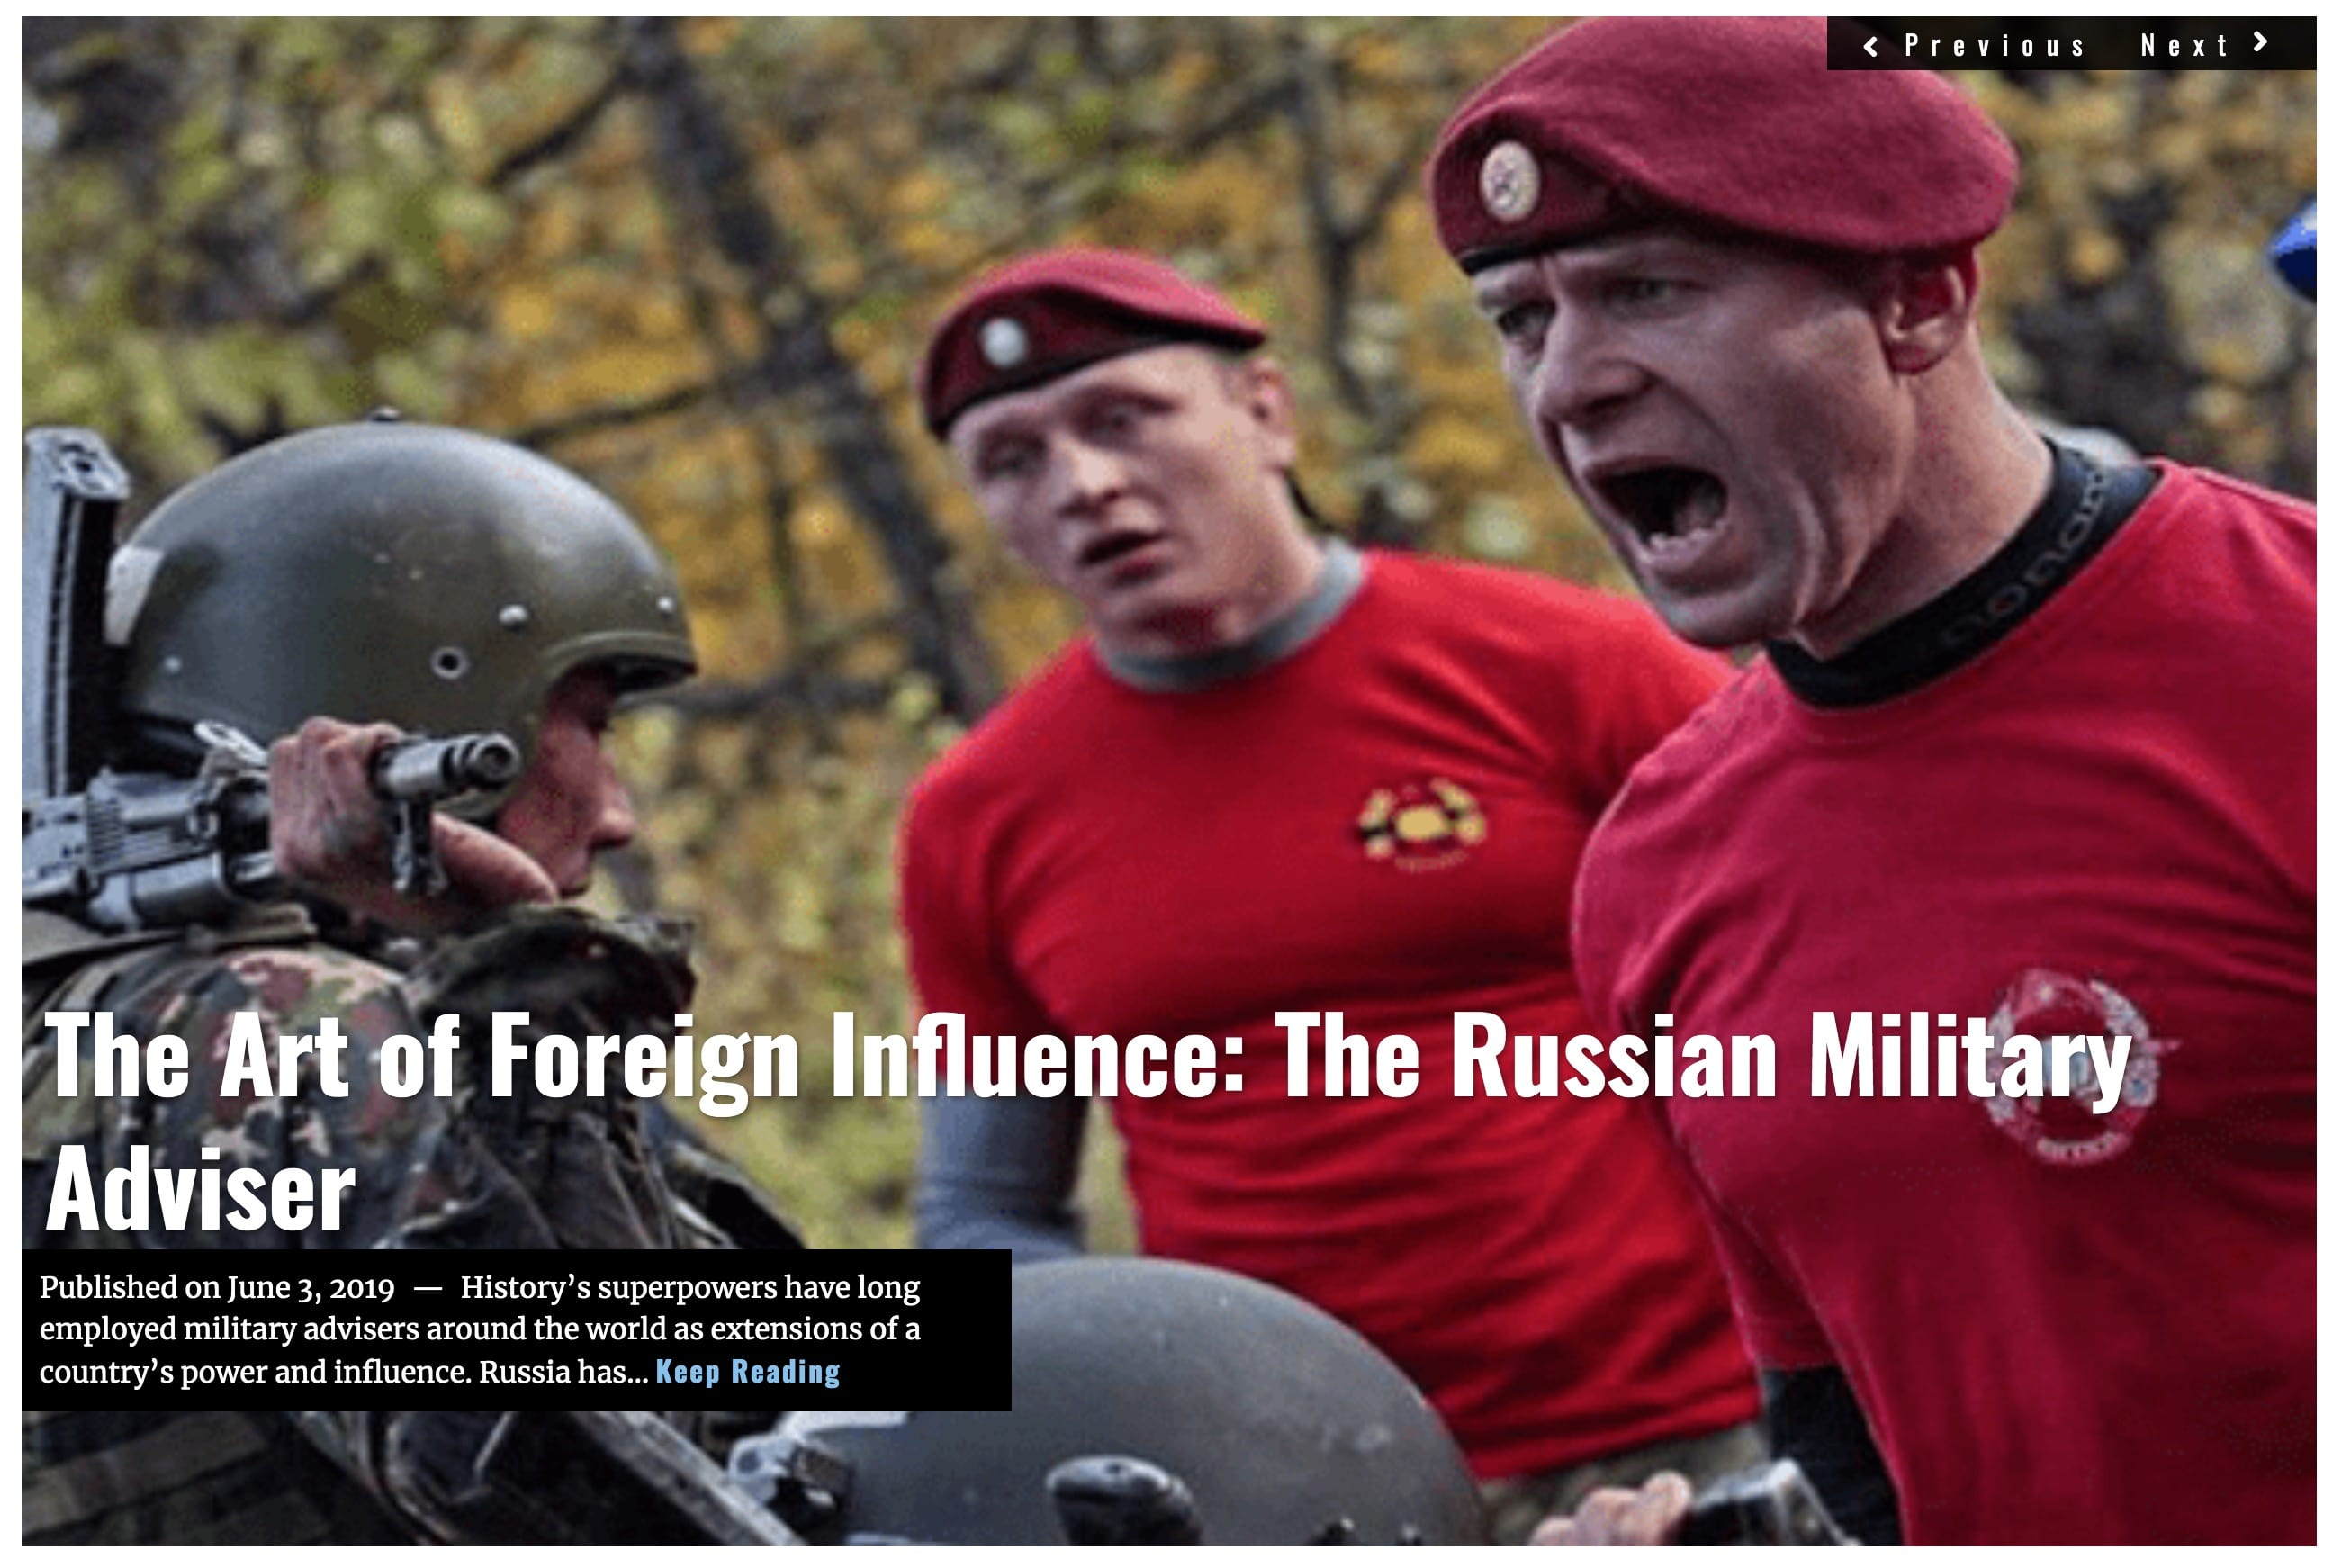 Lima Charlie News Headline Art of Foreign Influence Russian Military Adviser JUN 3 2019 DeAtkine